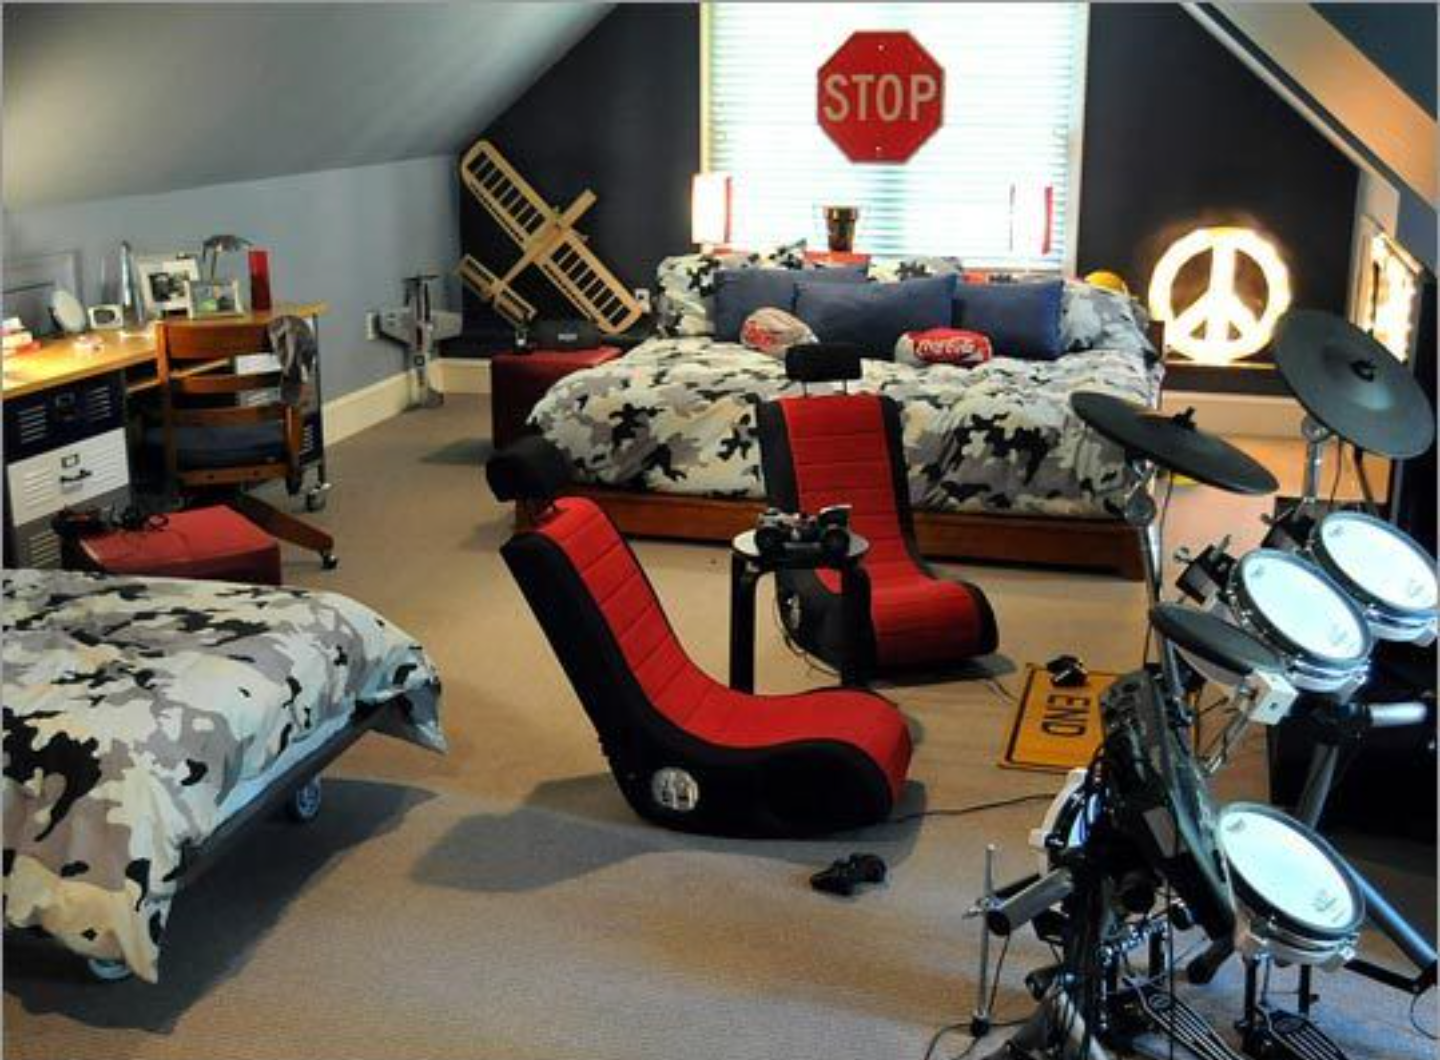 Bedroom Designs Outline this is the perfect shared bedroom for preteen brothers/teens